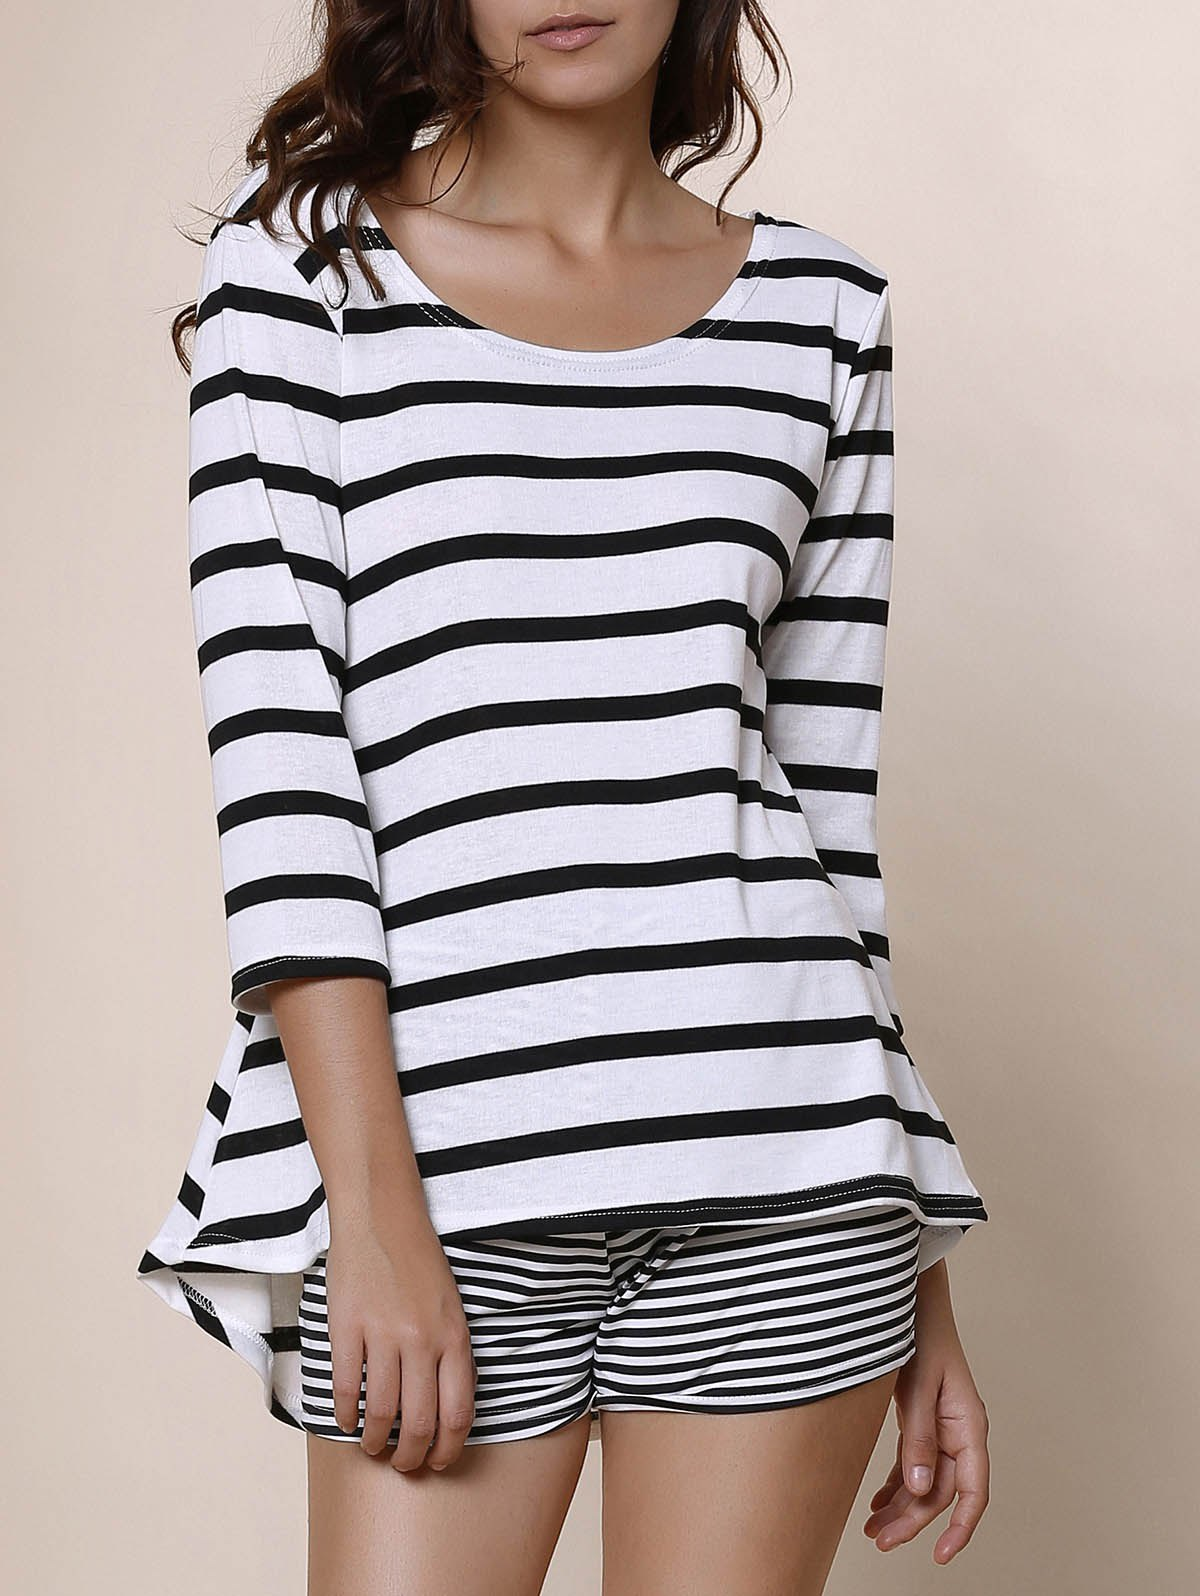 Simple Style Scoop Neck Stripe Print 3/4 Sleeve Blouse For Women - WHITE/BLACK S